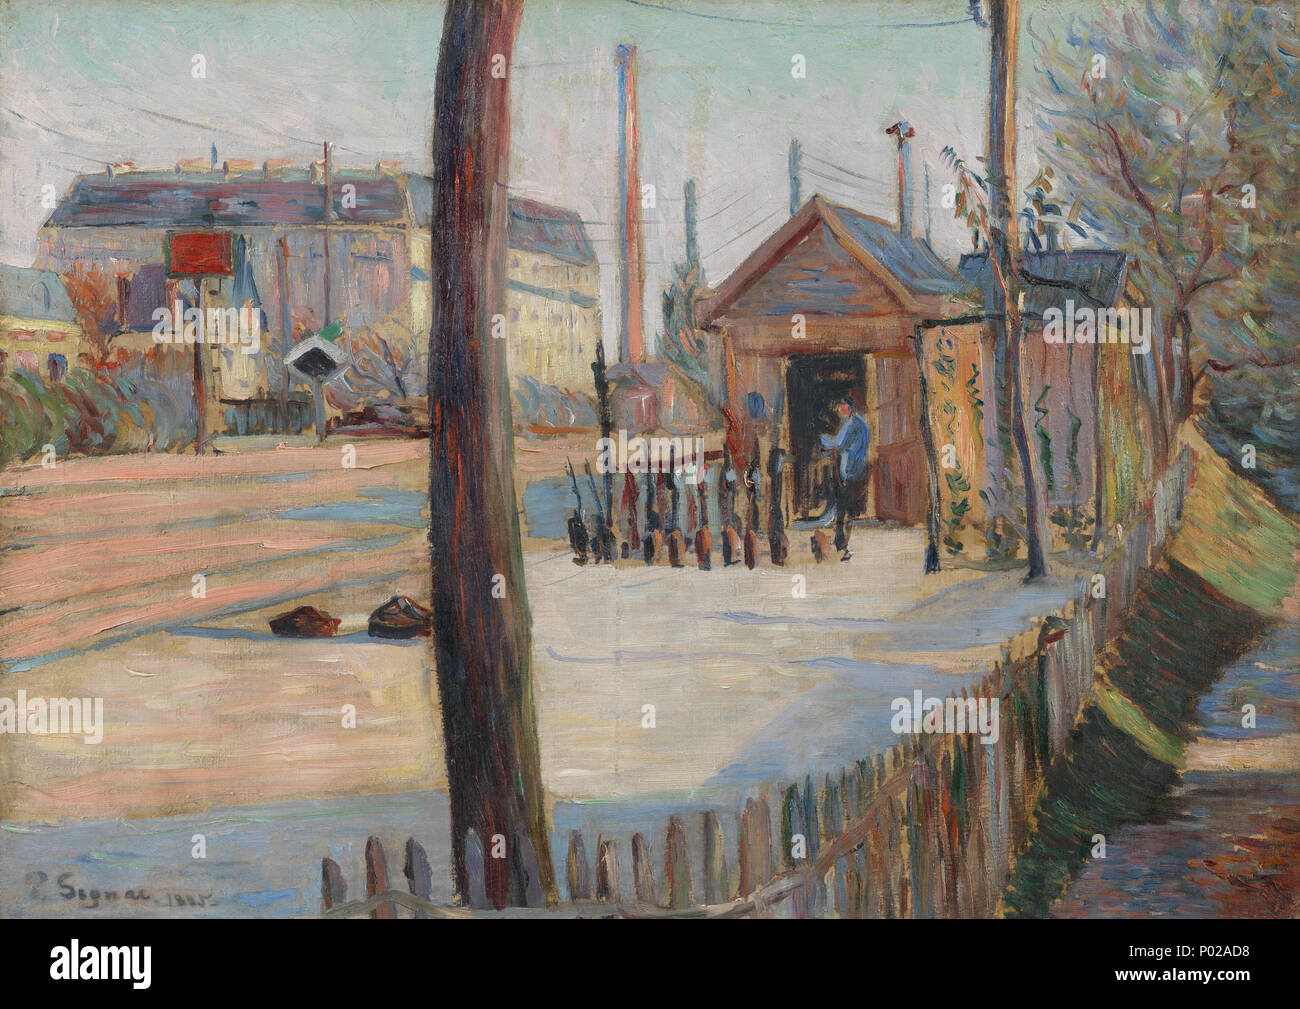 Colombes stock photos & colombes stock images page 2 alamy